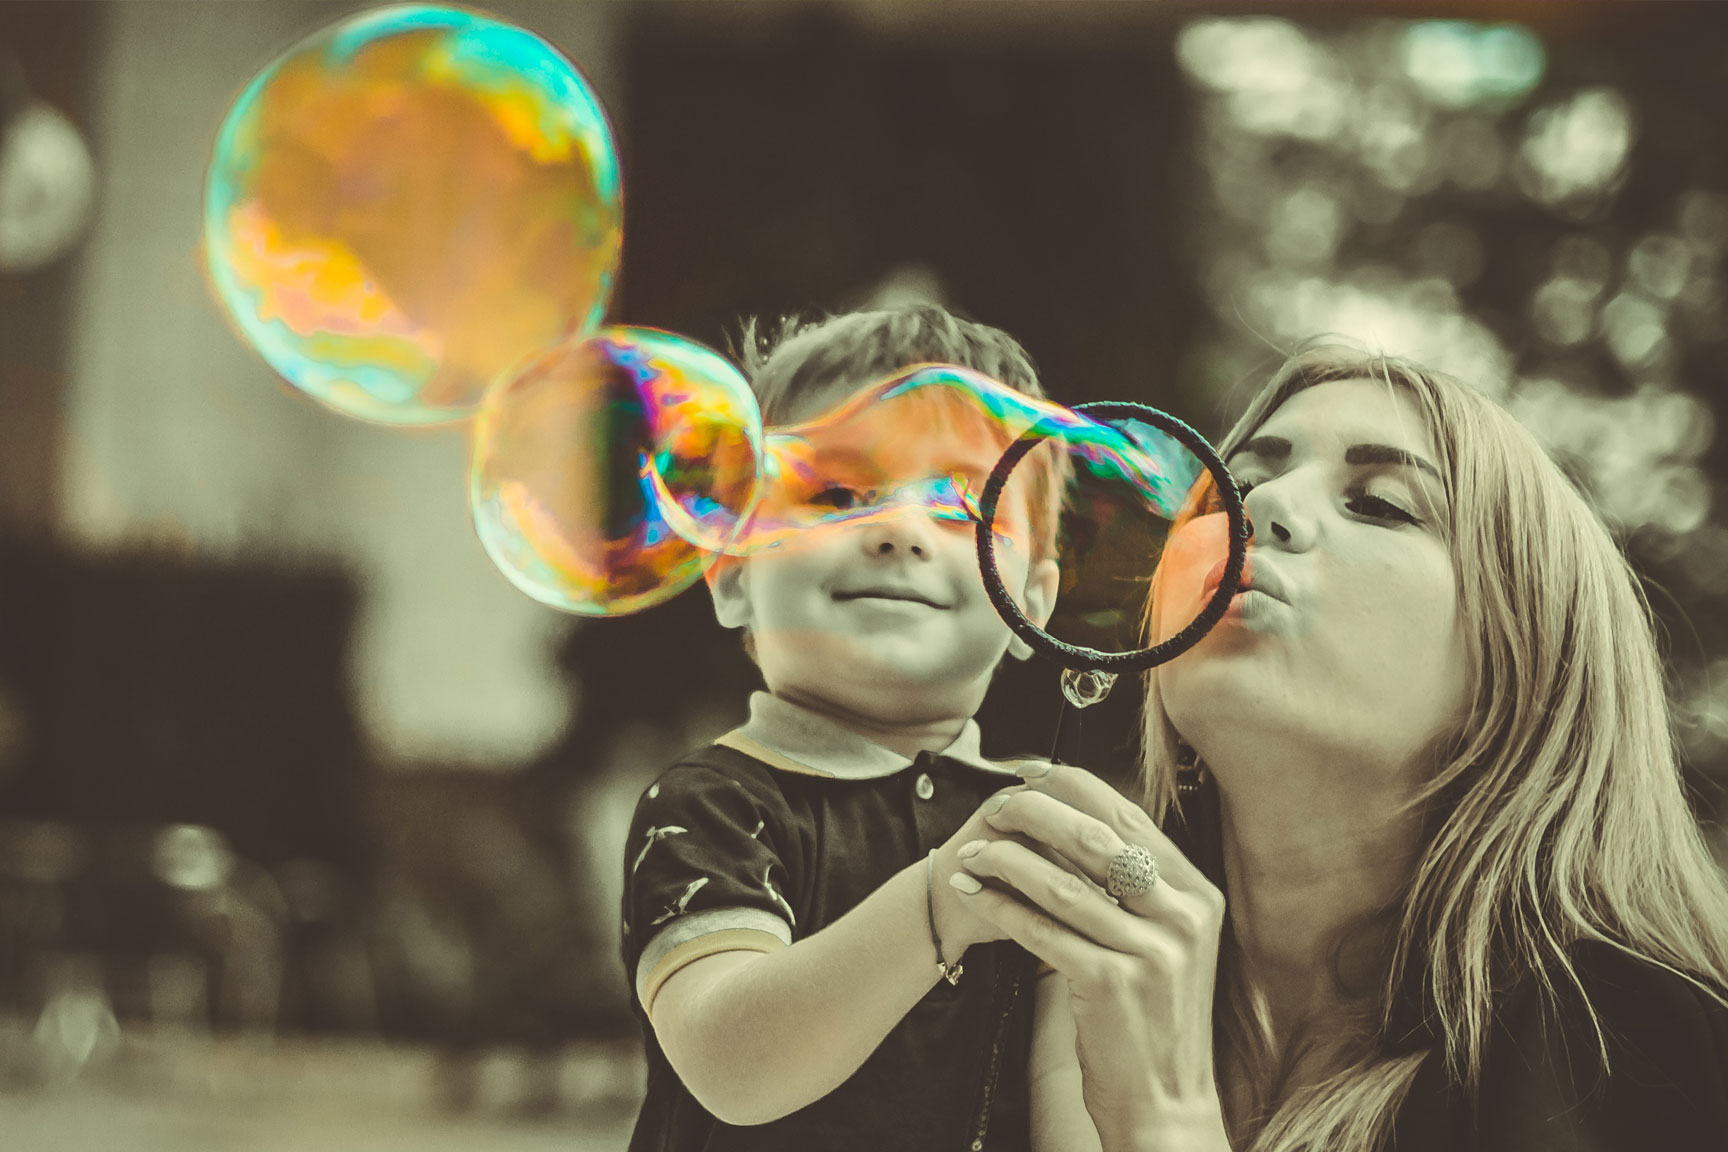 Boy with Autism blowing bubbles with a caretaker.